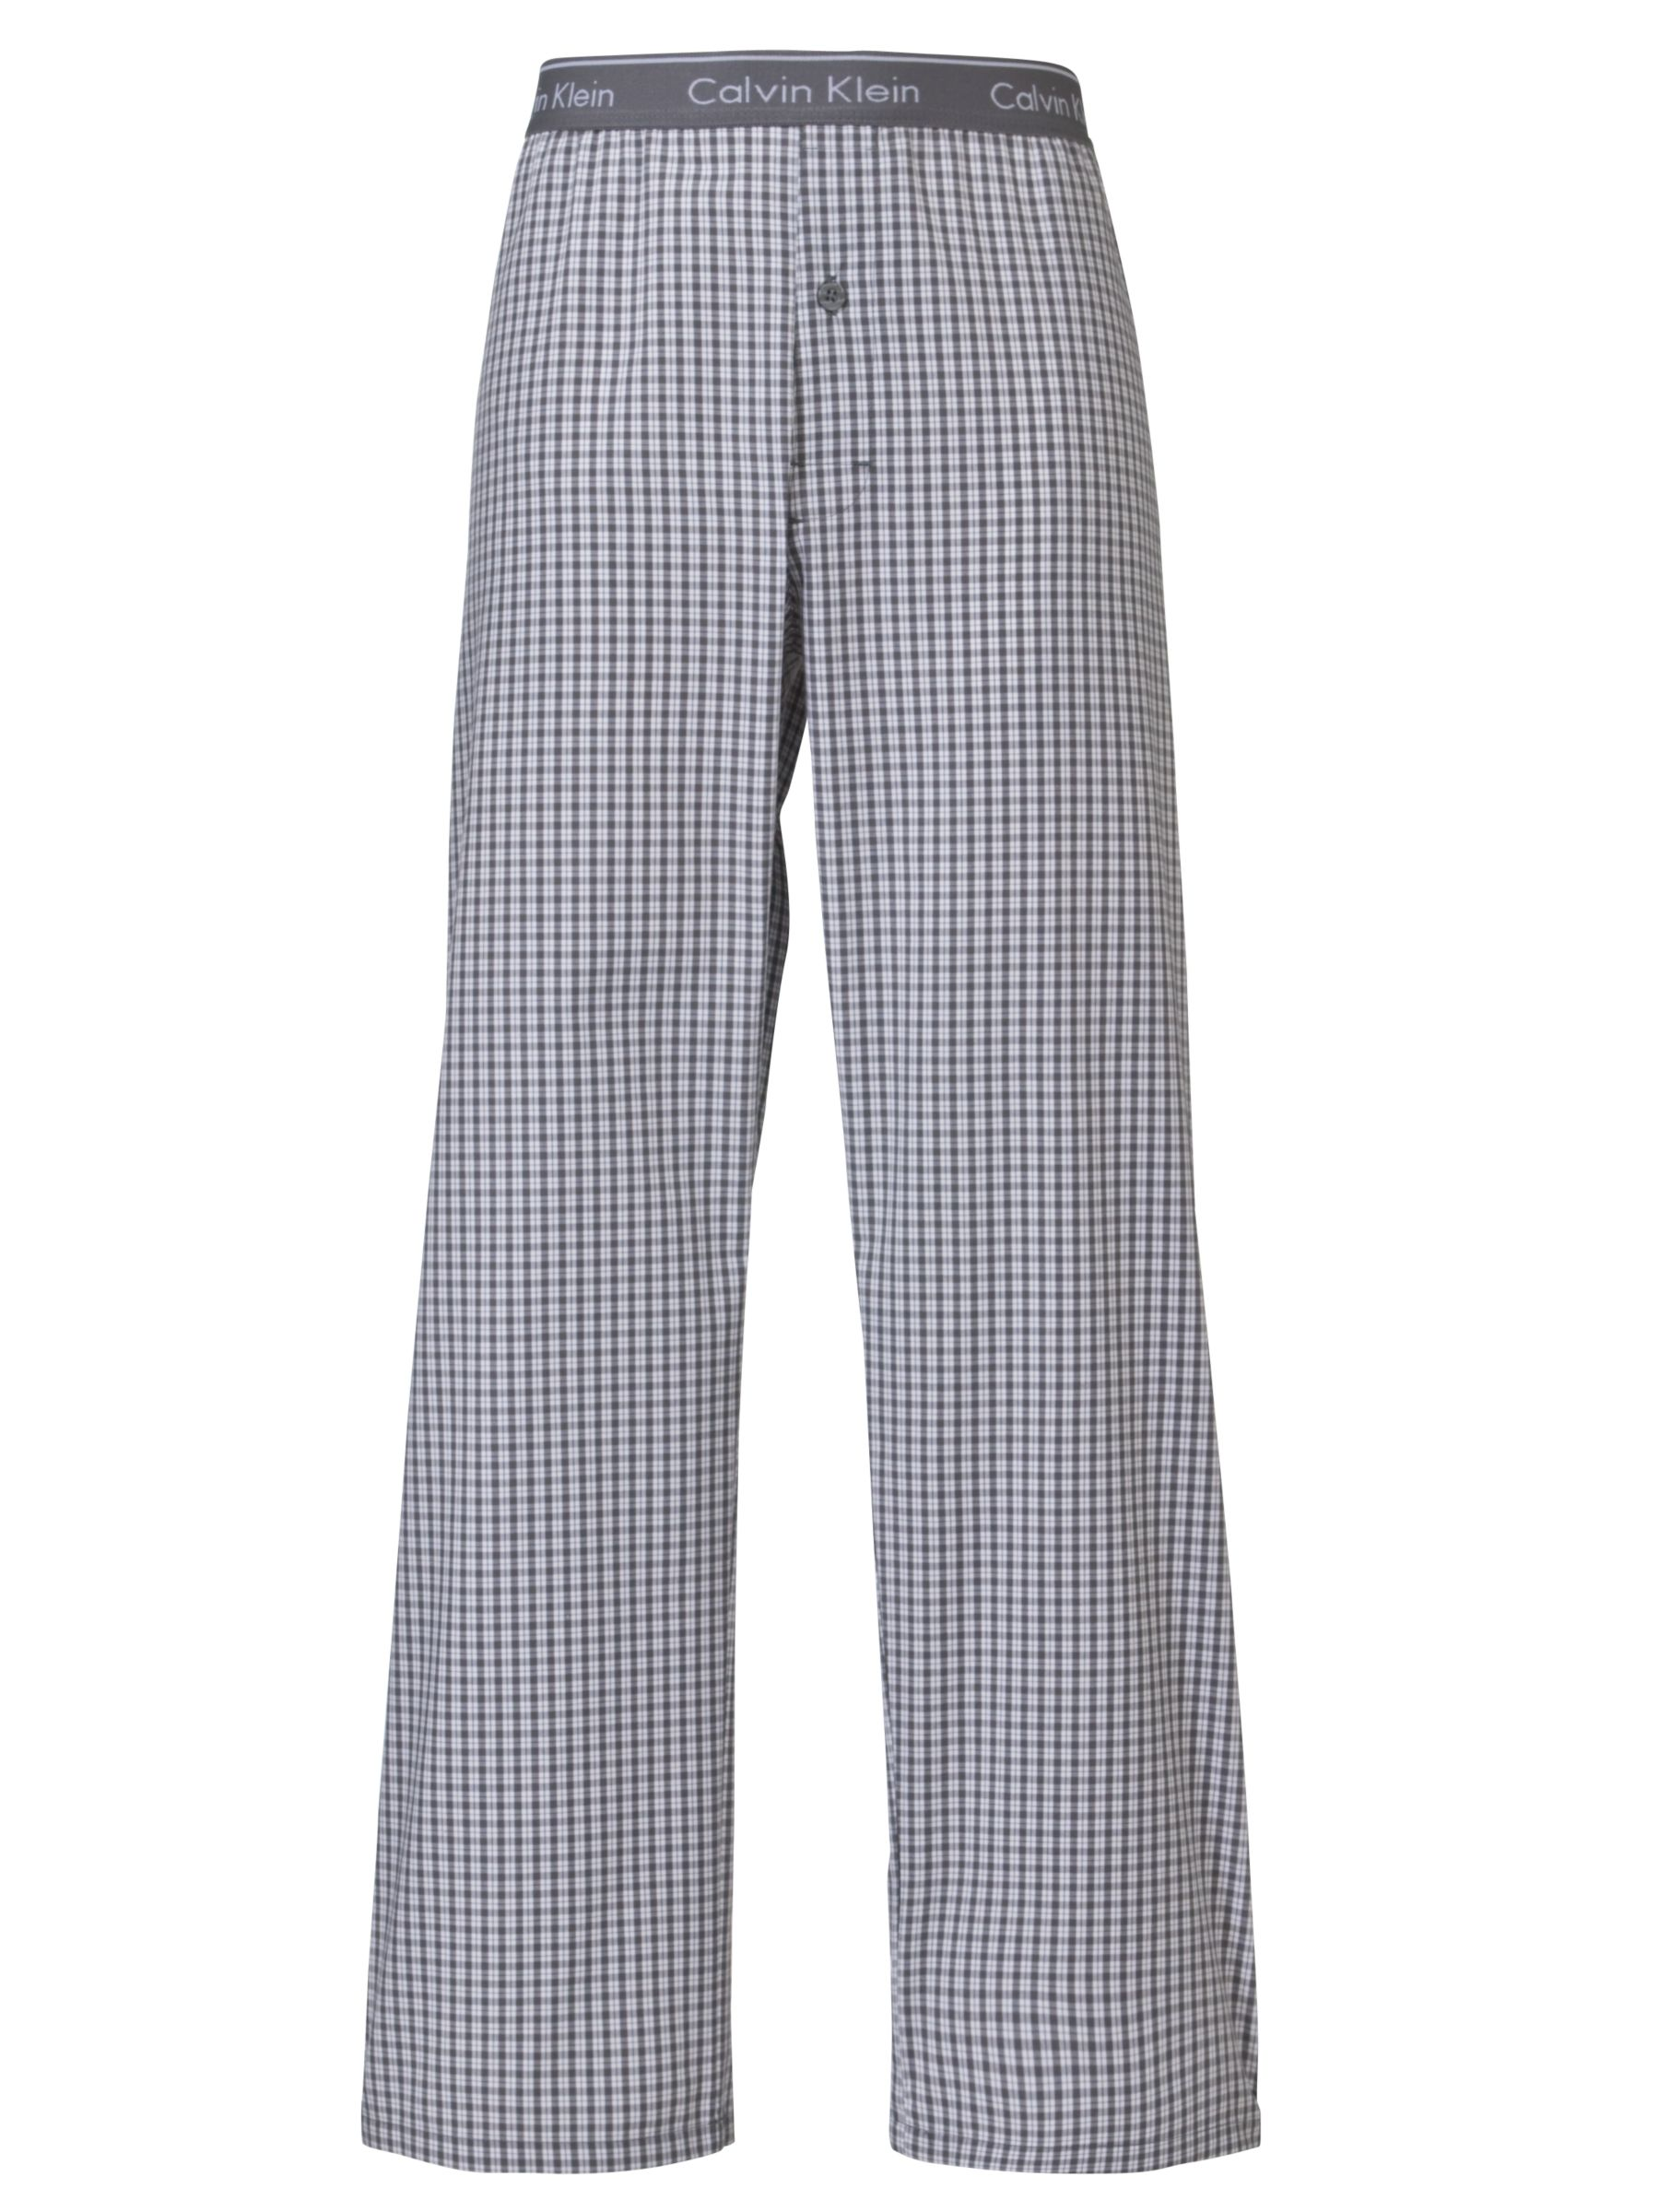 Calvin Klein Woven Check Print Pyjama Trousers, Red